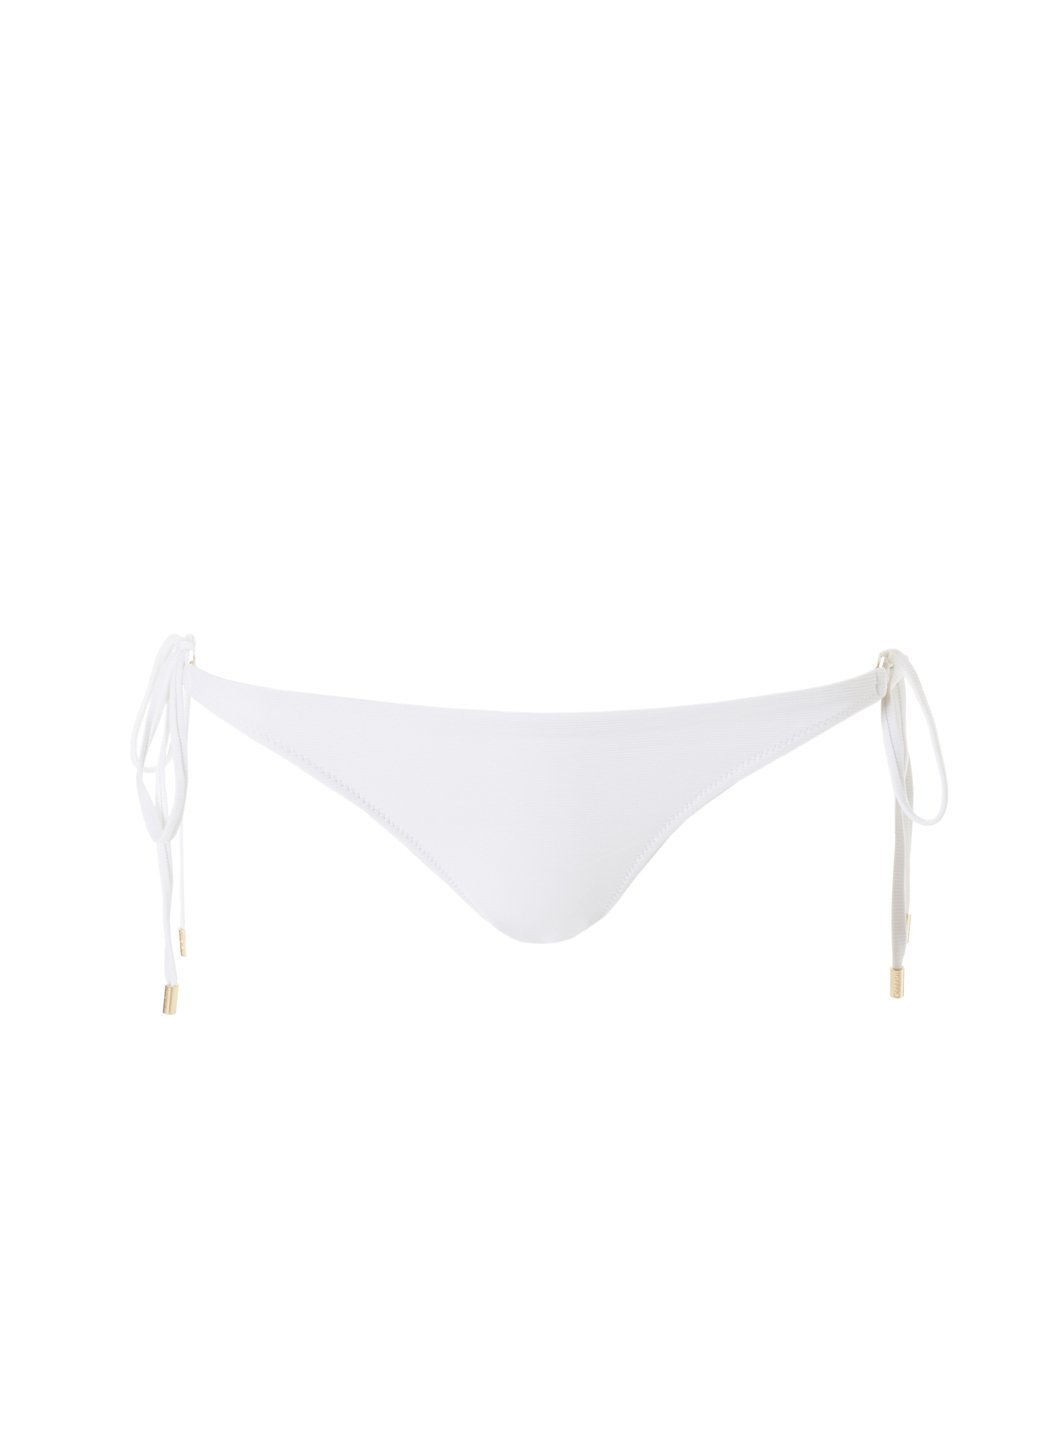 Exclusive Cancun White Ribbed Classic Triangle Bikini Bottom